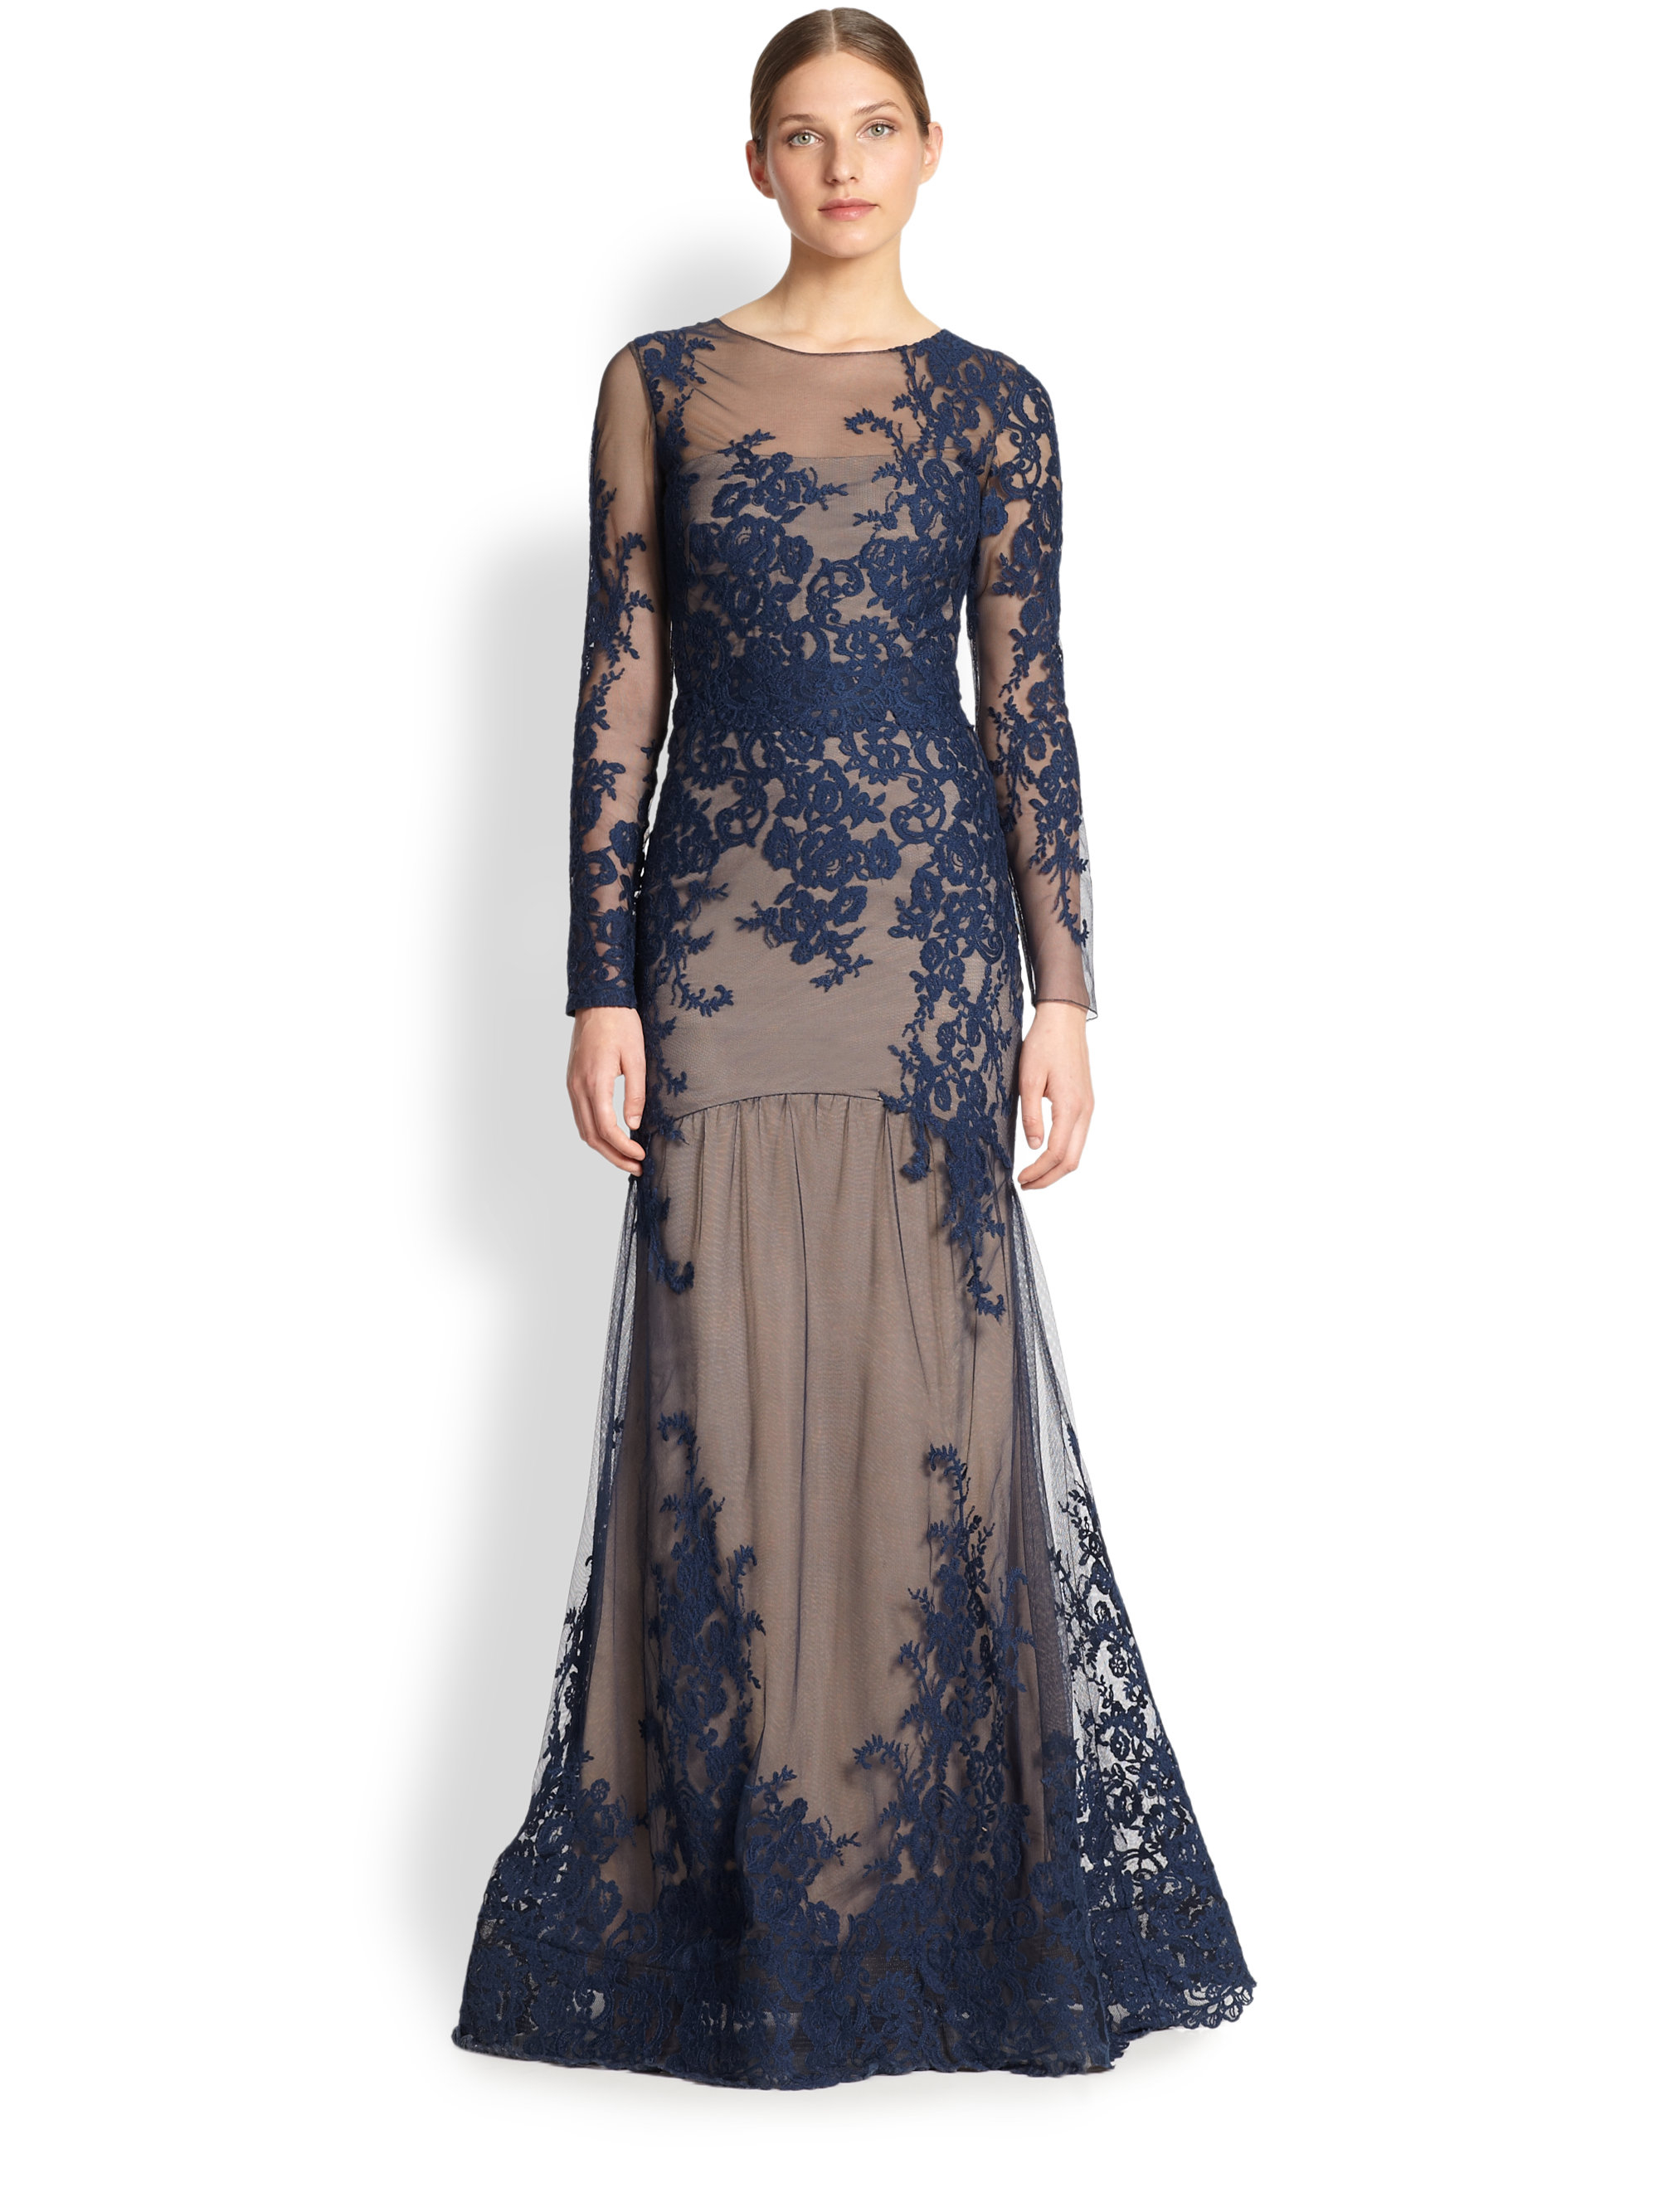 Notte by marchesa Floral & Lace Mermaid Gown in Blue